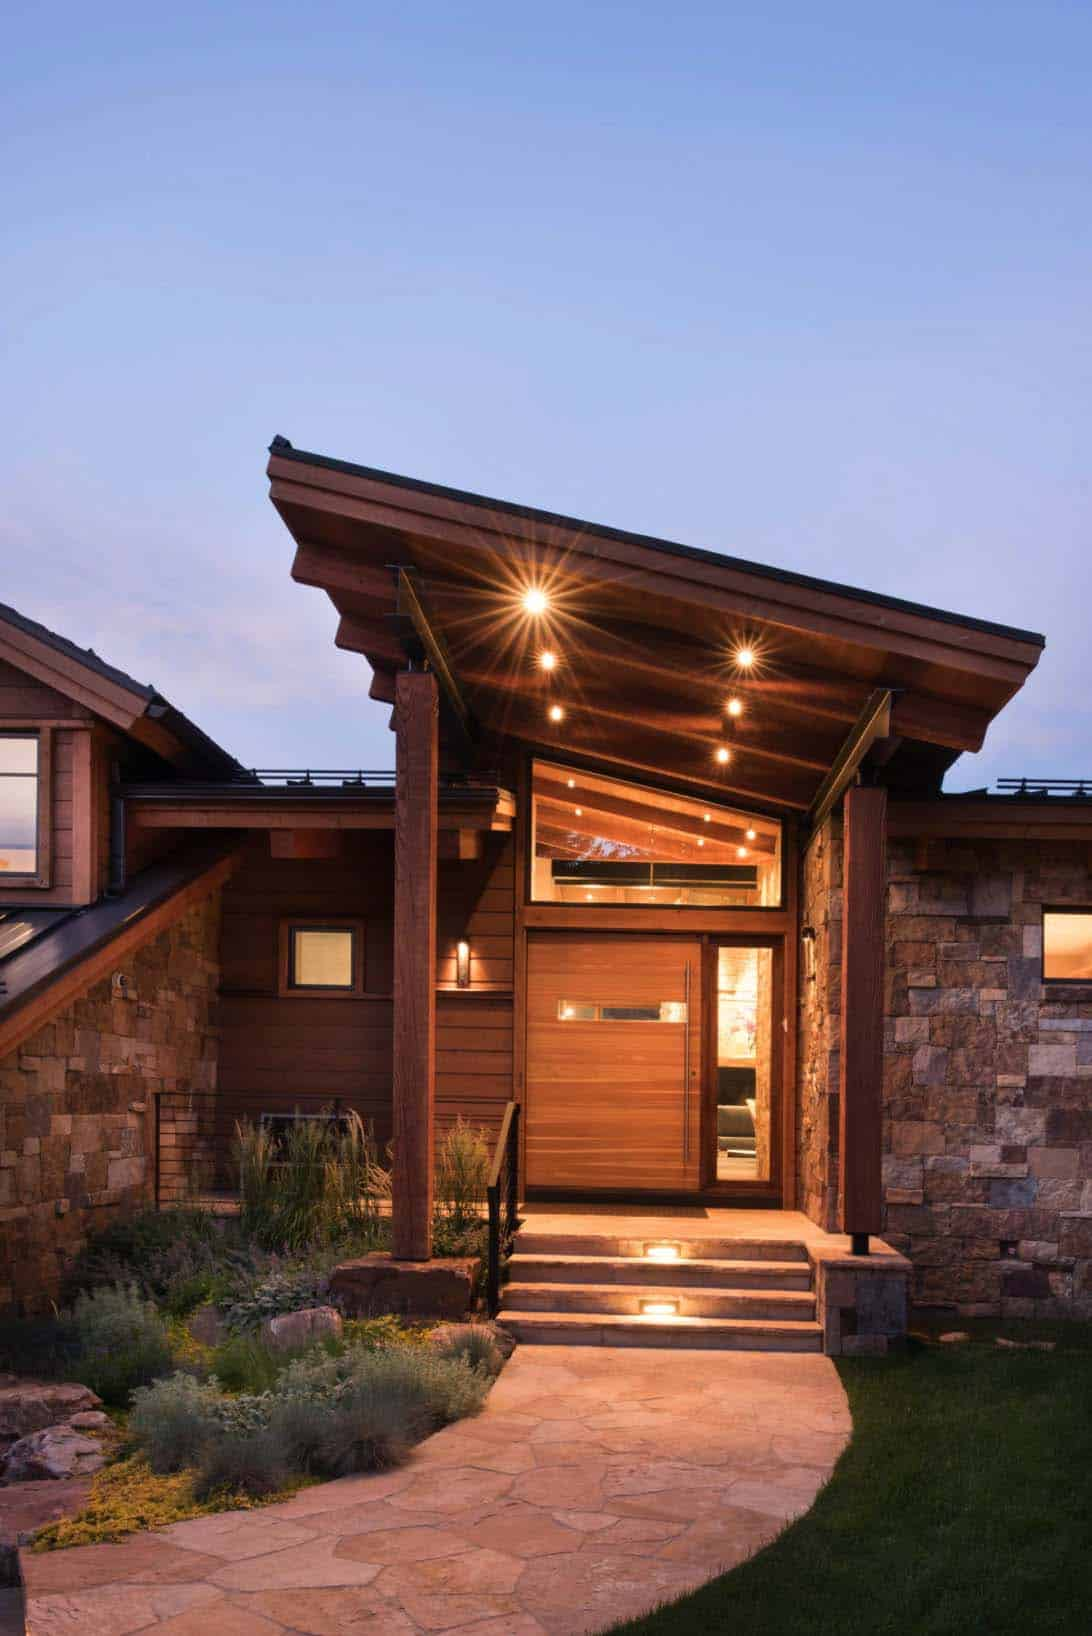 Contemporary Mountain Home Renovation-Berglund Architects-04-1 Kindesign